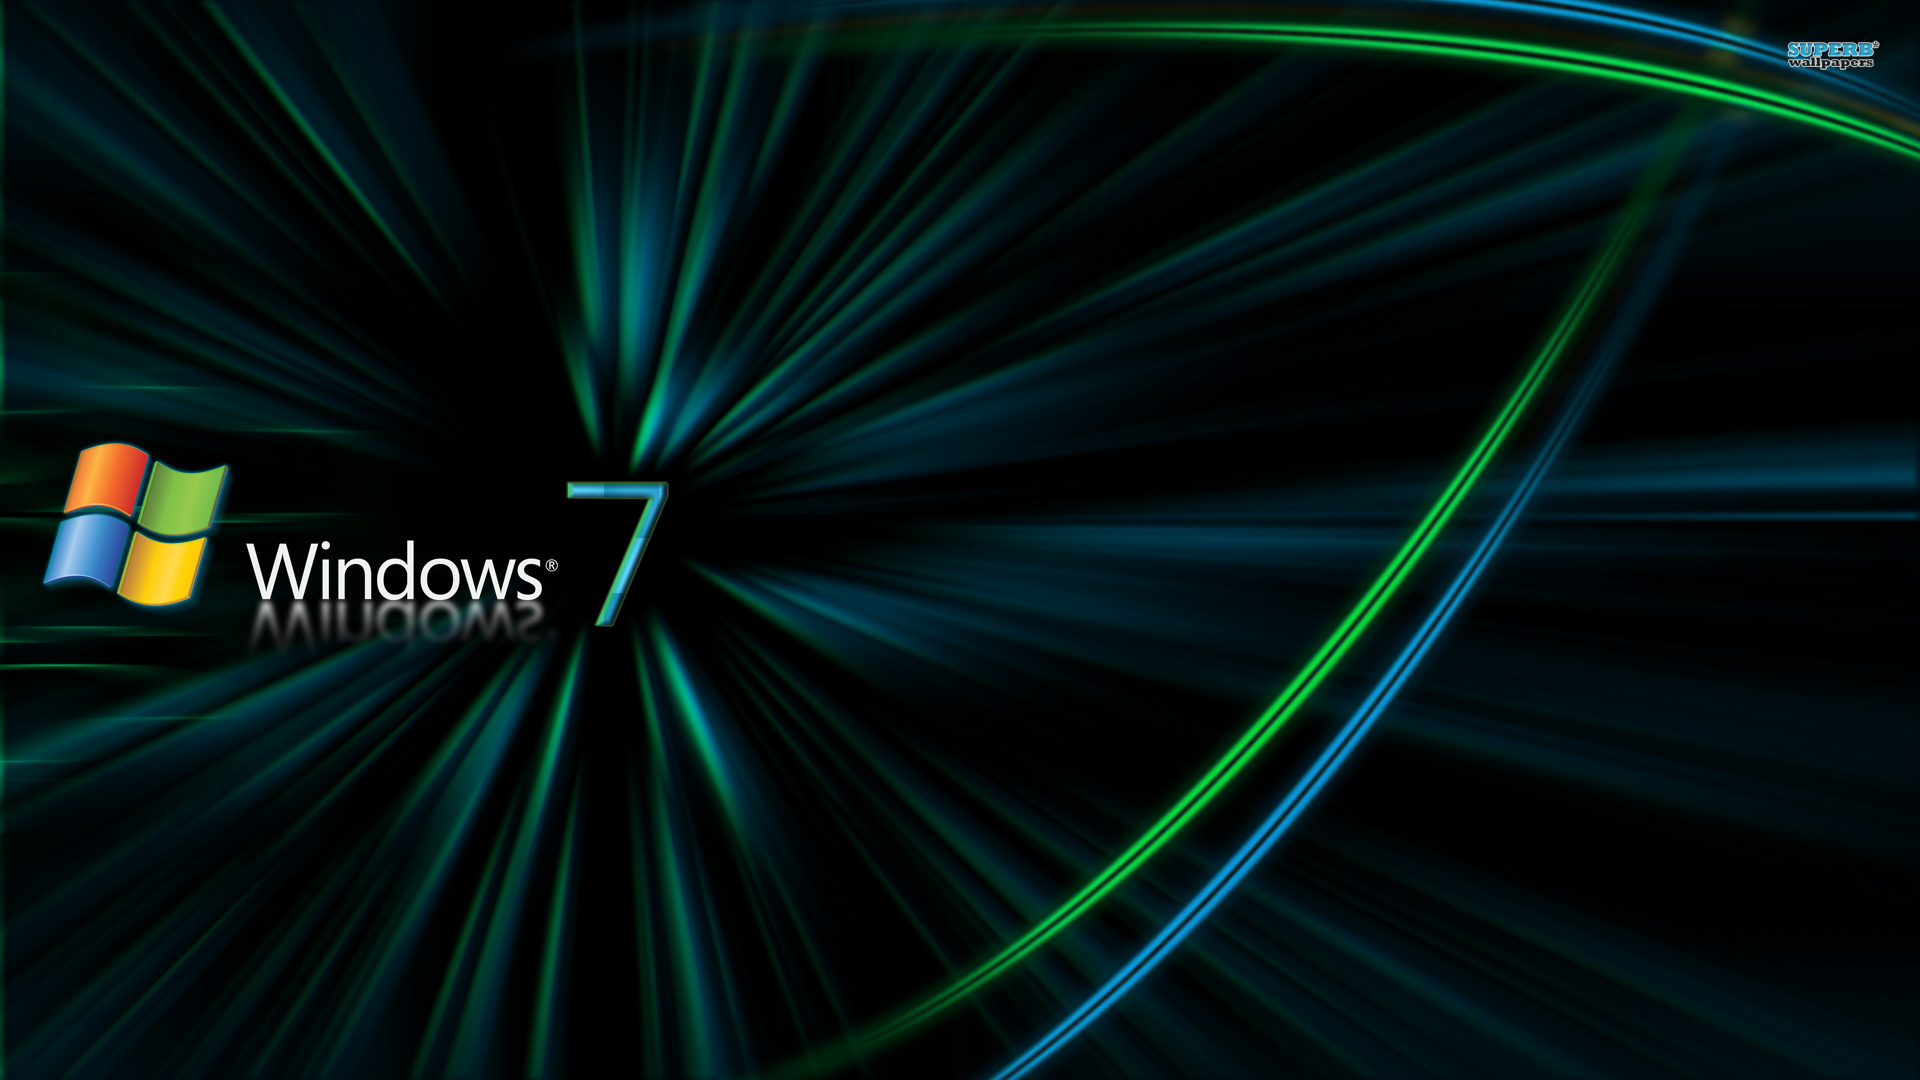 Windows 7 Wallpapers Downloads Posted By Michelle Cunningham